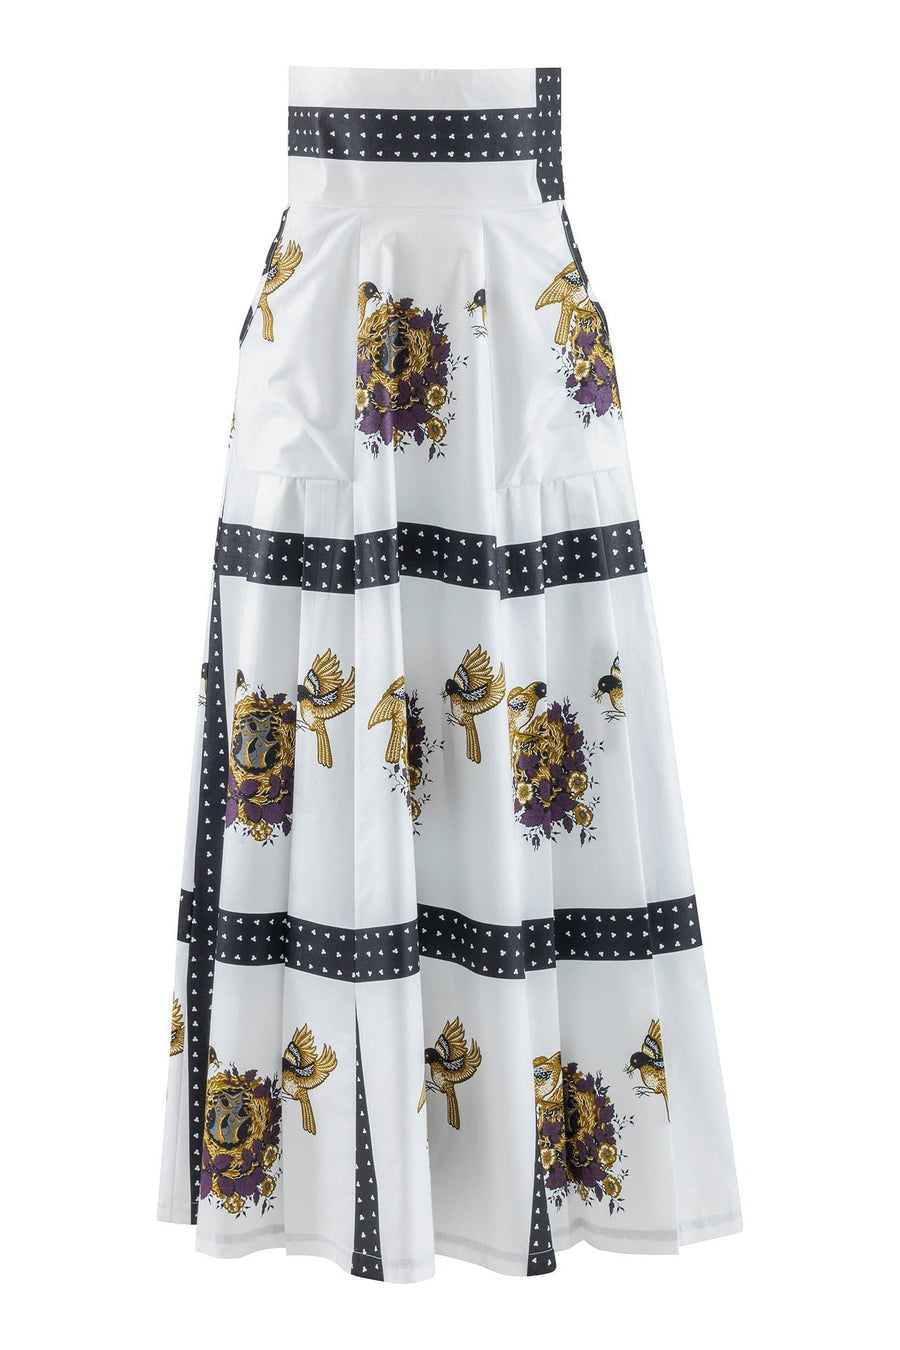 Ndege High Waist African Print Maxi Skirt - With Bird Nest Detail